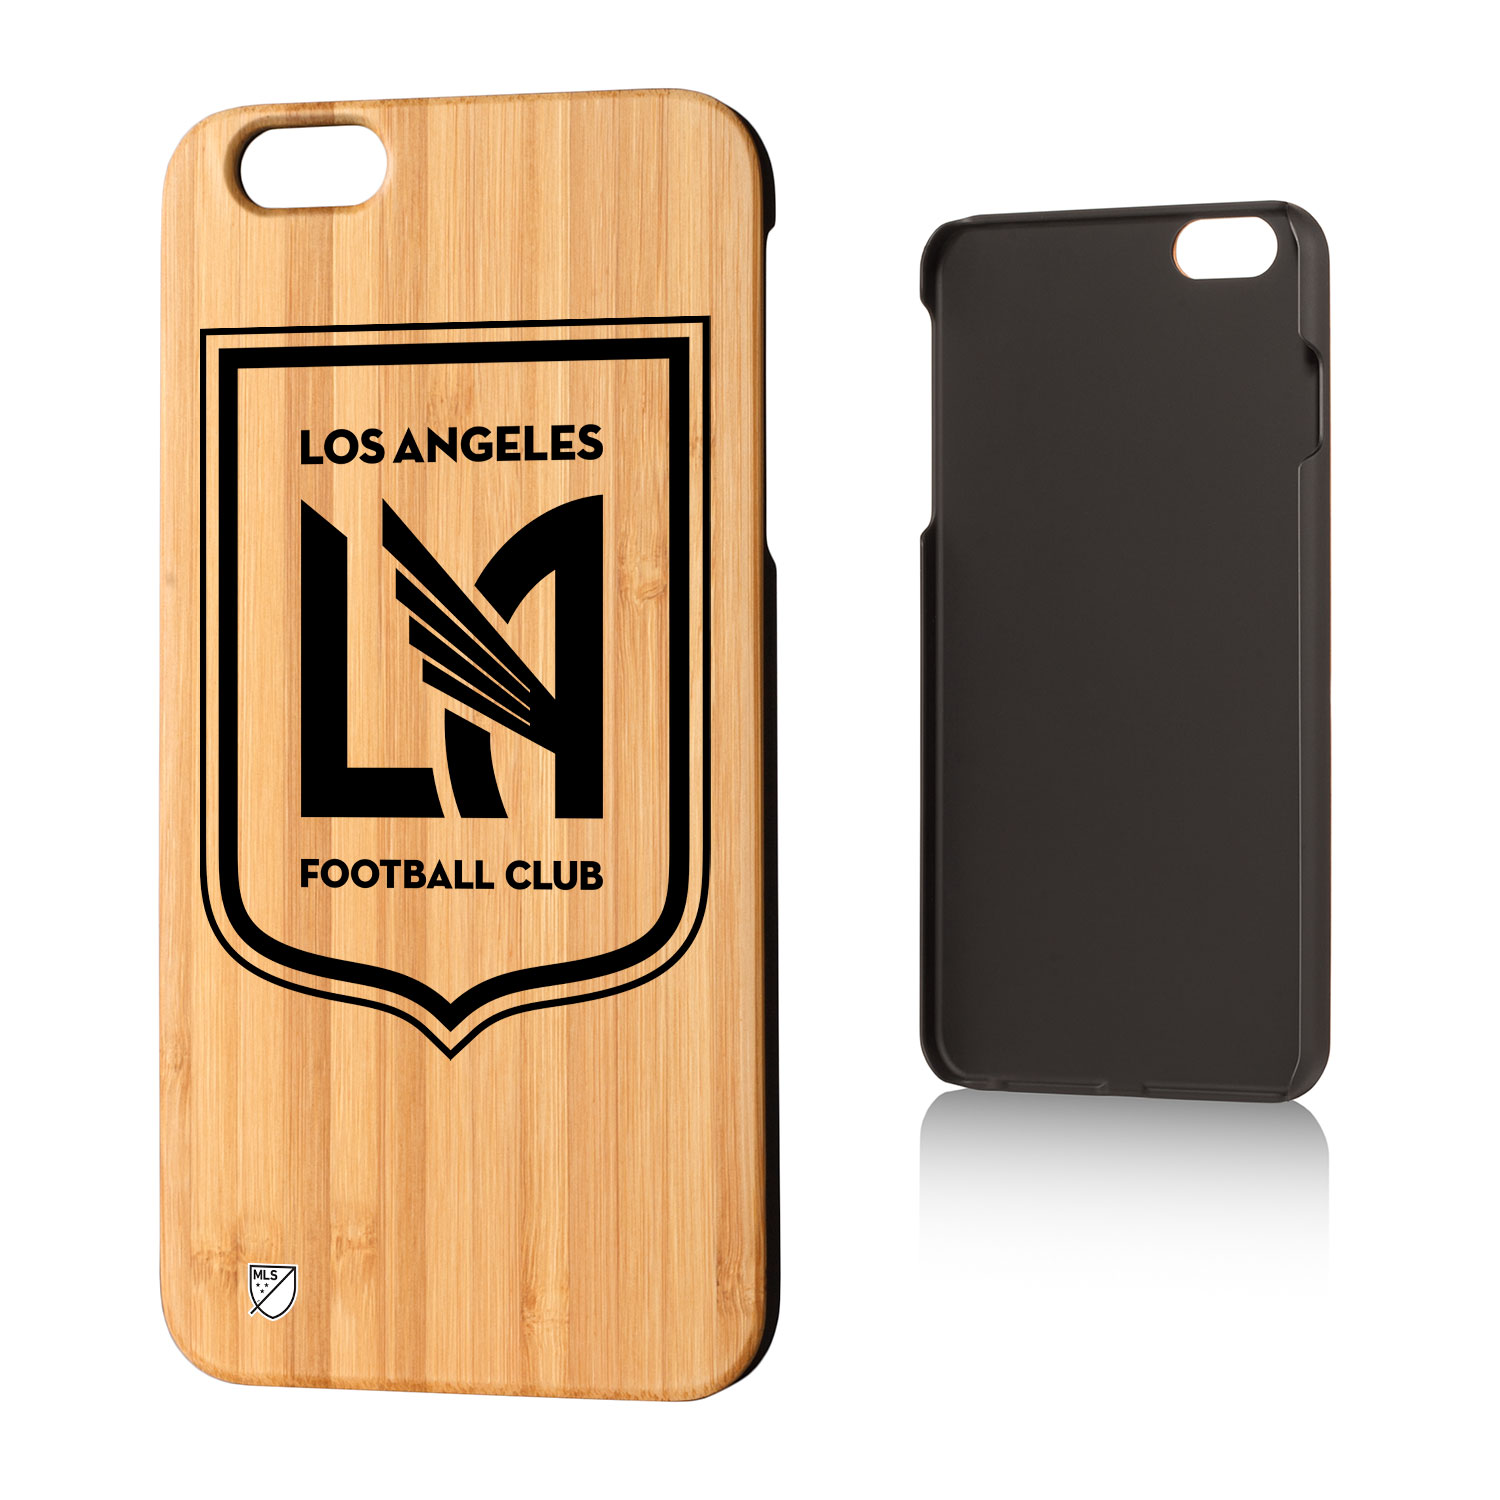 Los Angeles Footbal Club LAFC Insignia Bamboo Case for iPhone 6 Plus